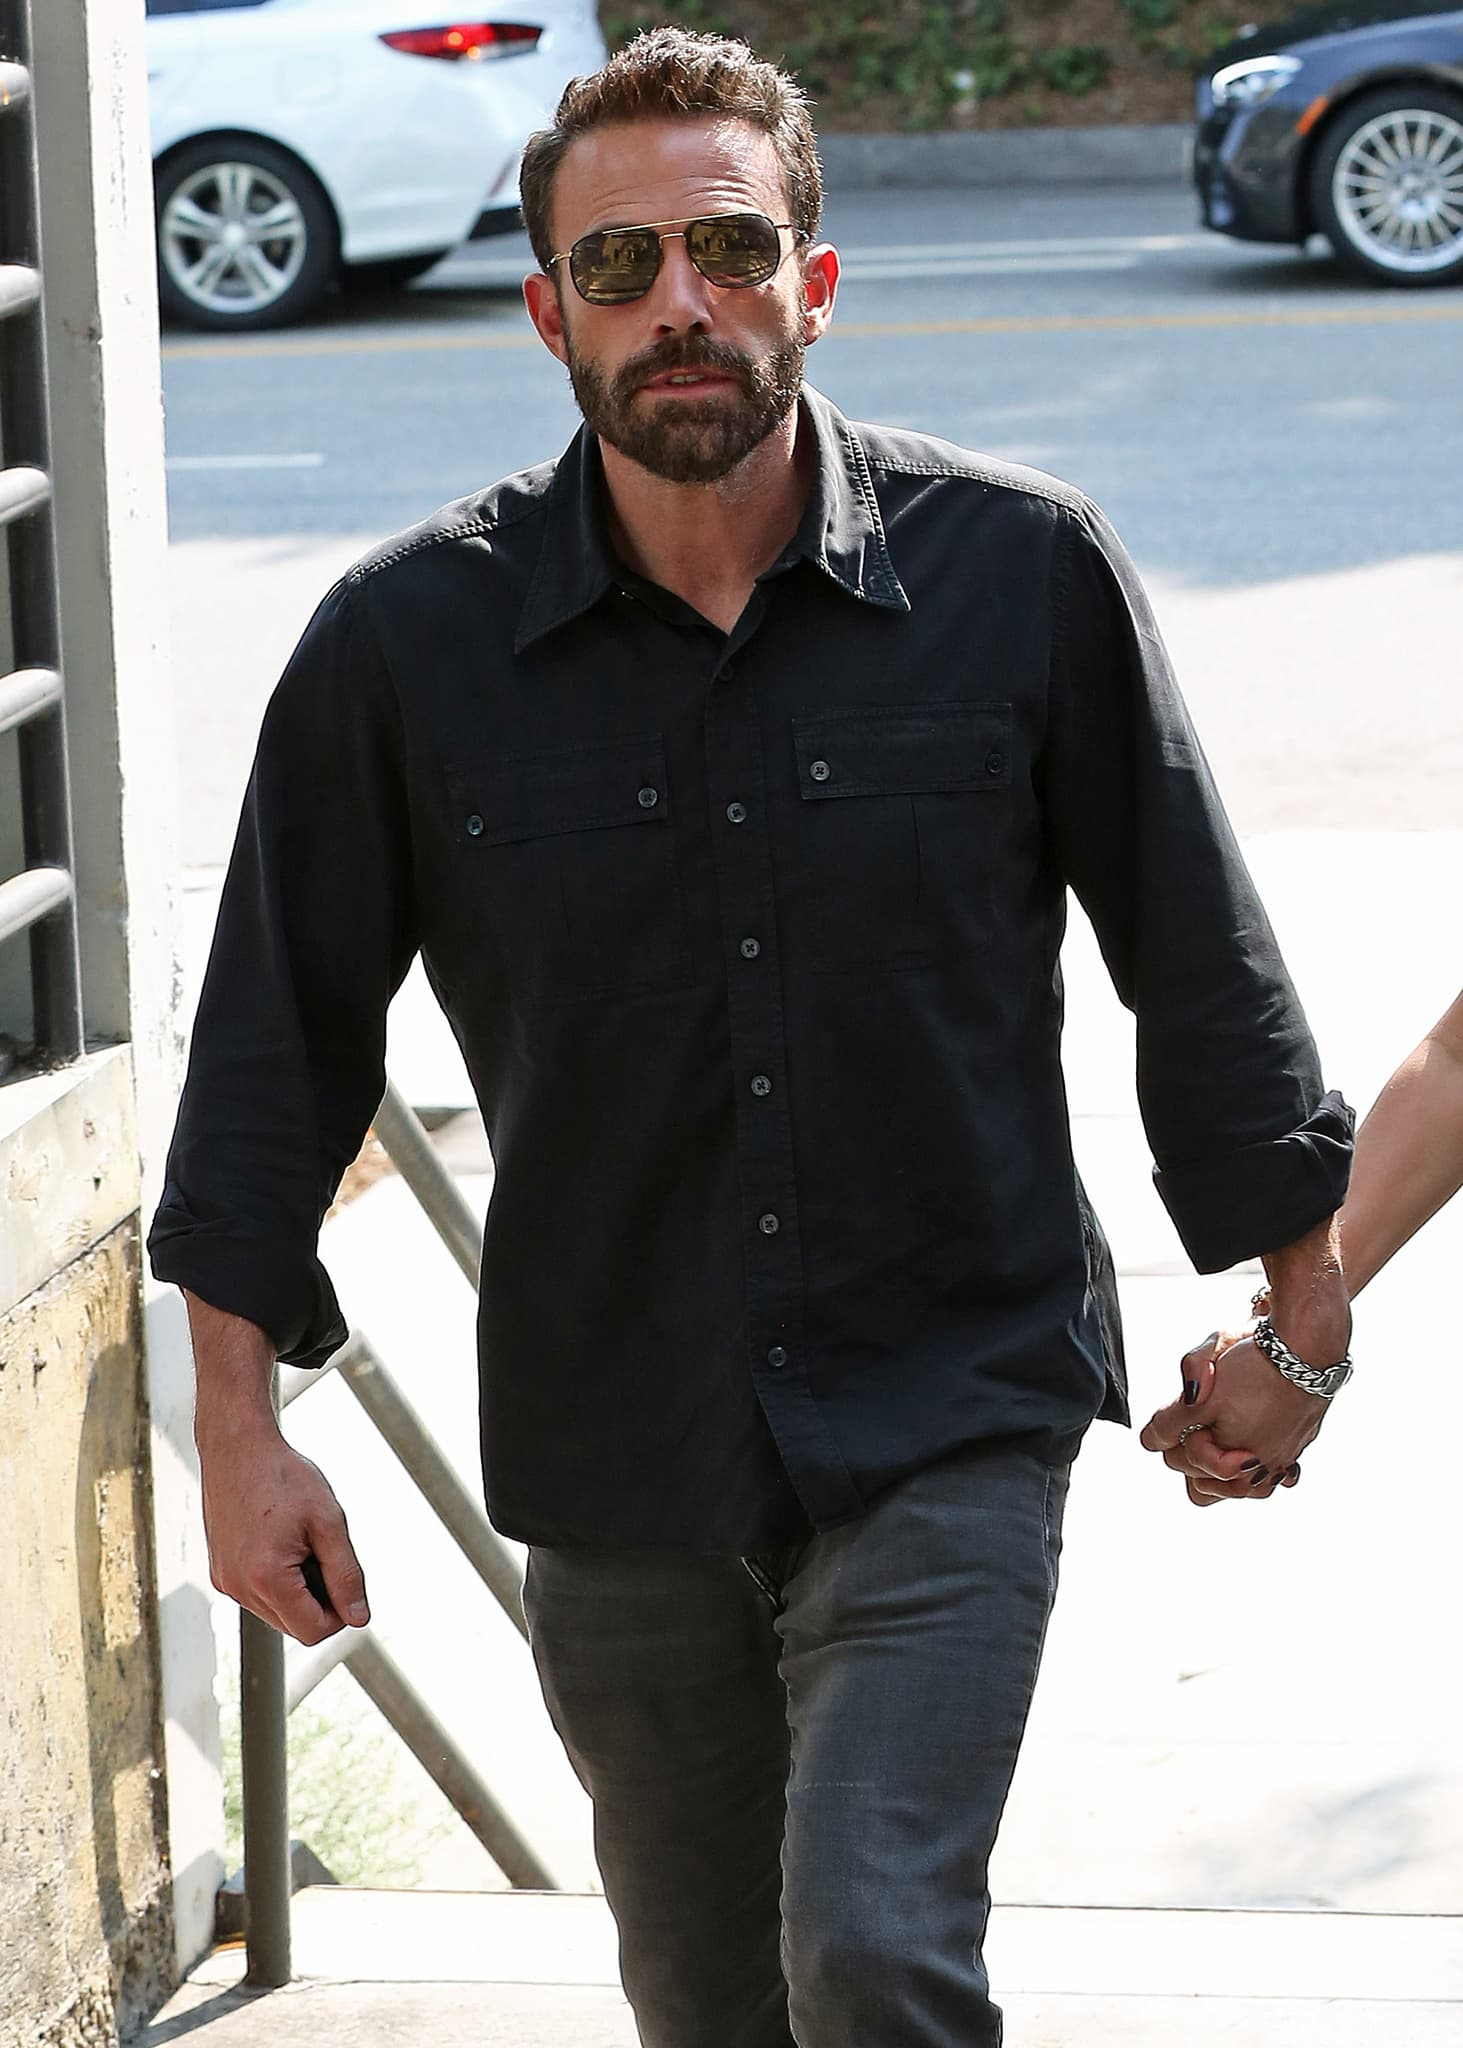 Ben Affleck looks handsome in his black shirt, gray pants, and aviator sunglasses